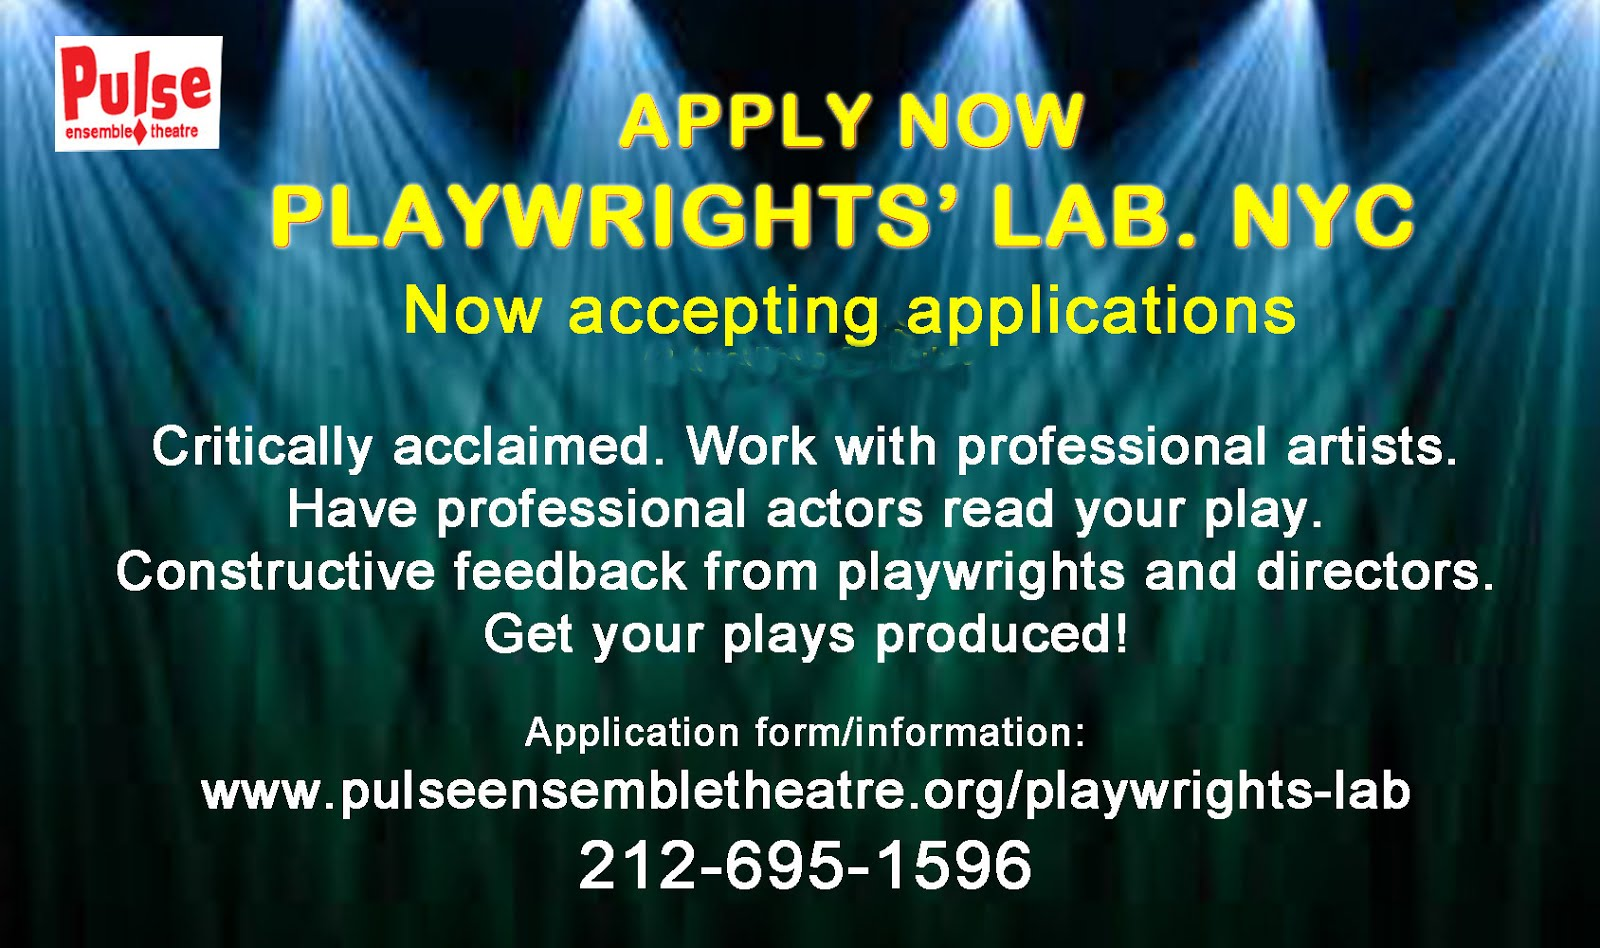 NYCPLAYWRIGHTS: PLAYWRIGHTS' LAB ACCEPTING APPLICATIONS FOR